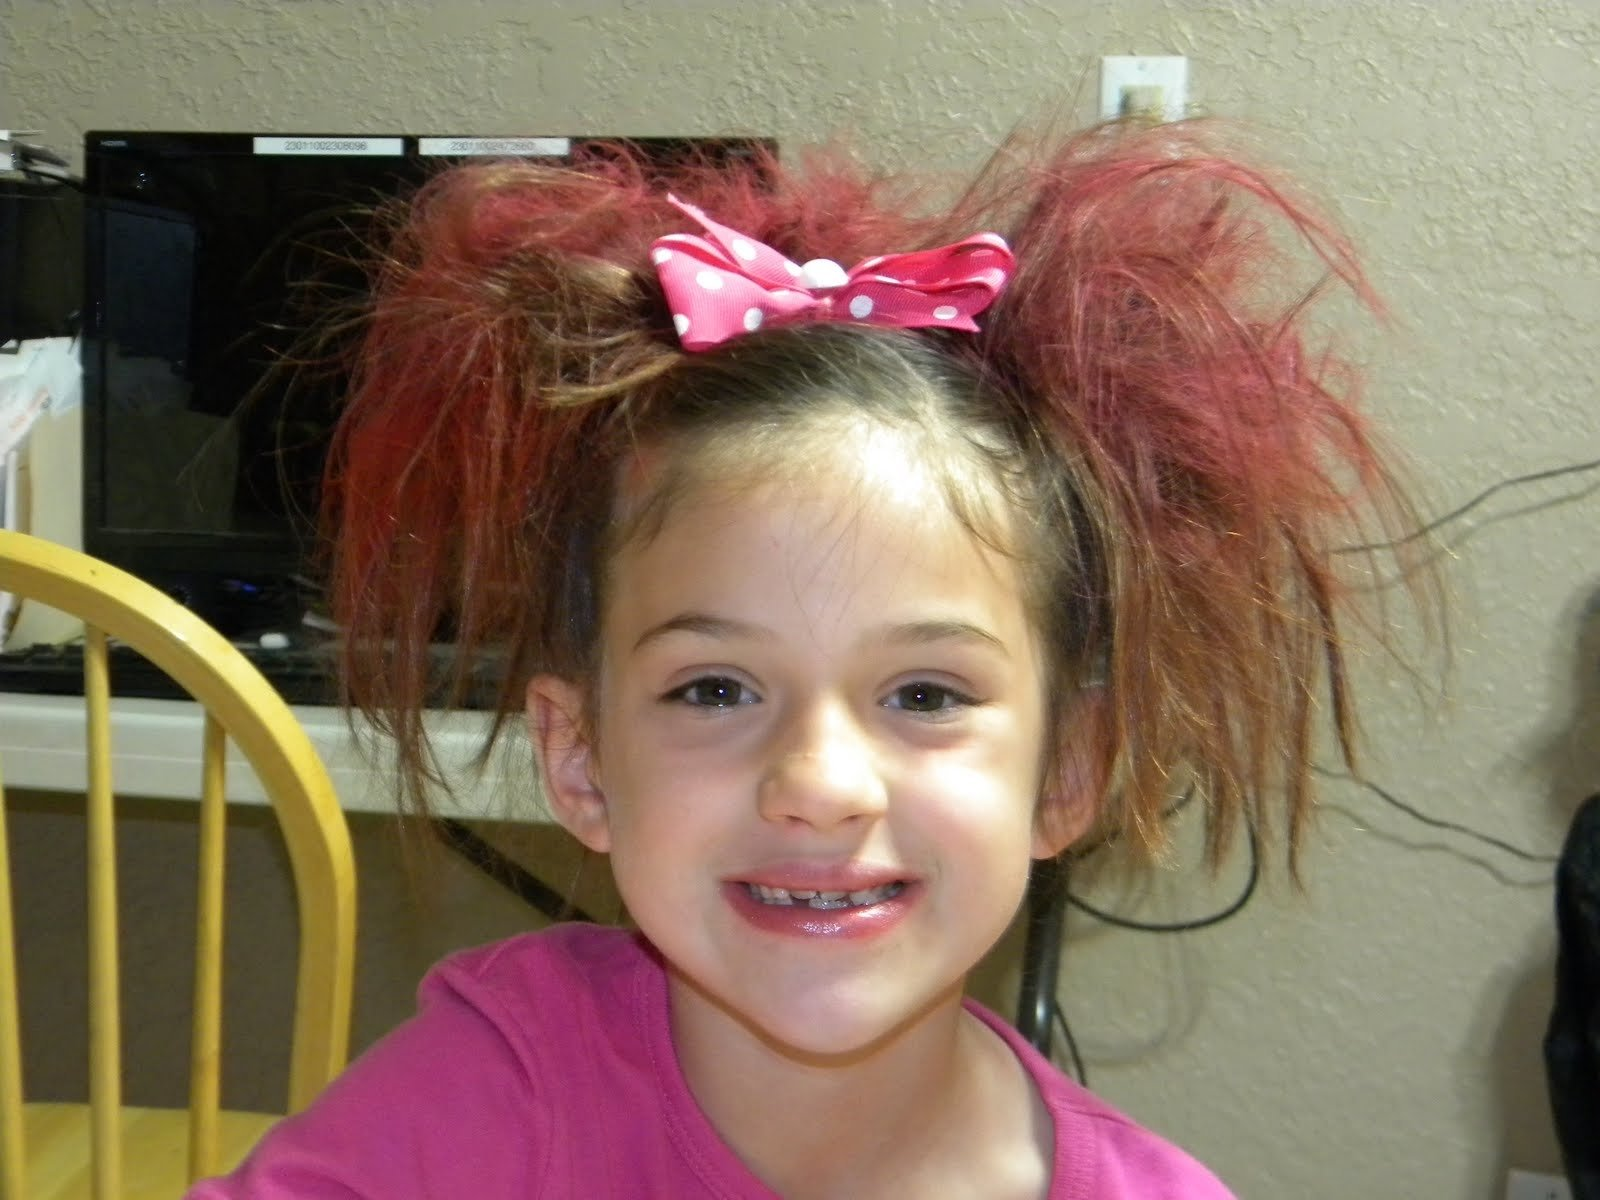 10 Fashionable Crazy Hair Day Ideas For Girls crazy hair day ideas for medium hair styles ideas 46165 1 2021